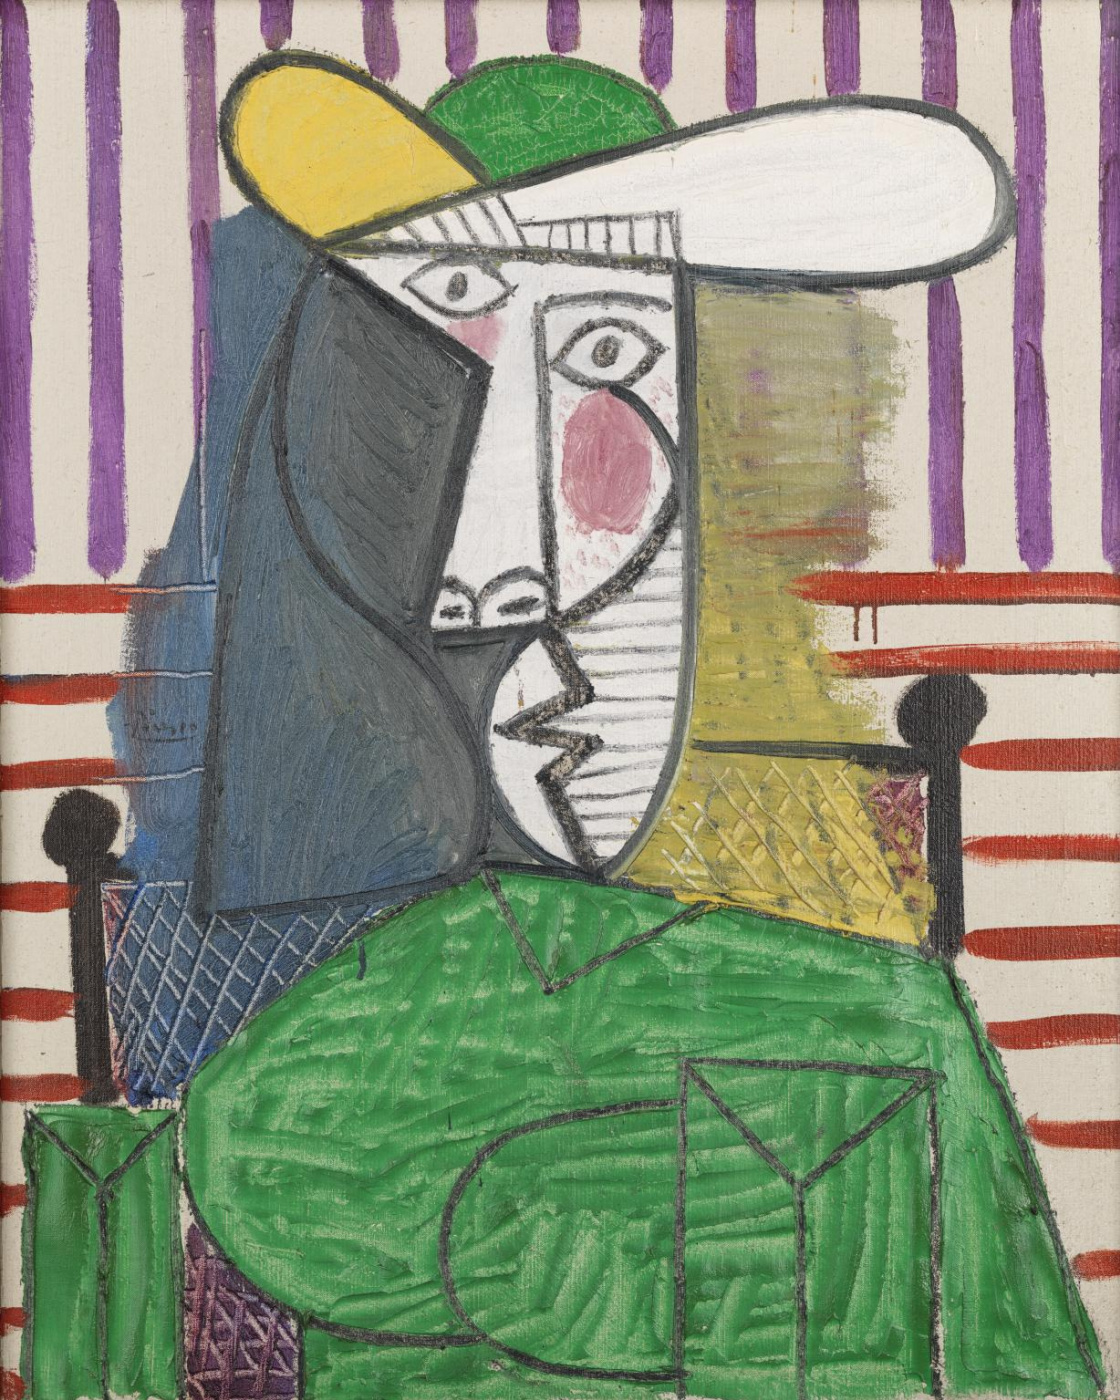 Pablo Picasso. Bust of a Woman